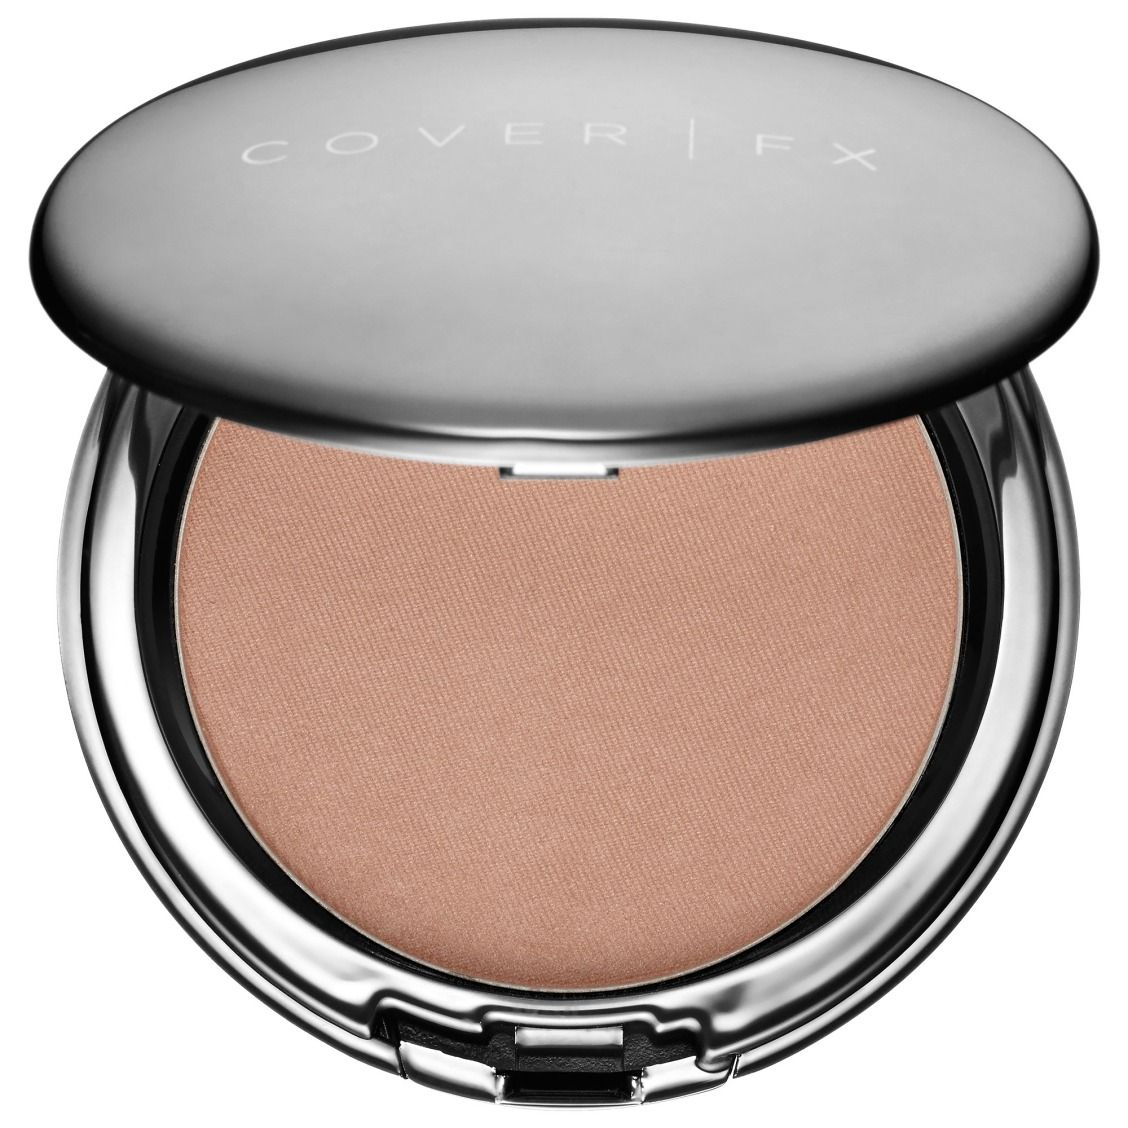 The Perfect Light Highlighting Powder Cover fx, Luxury